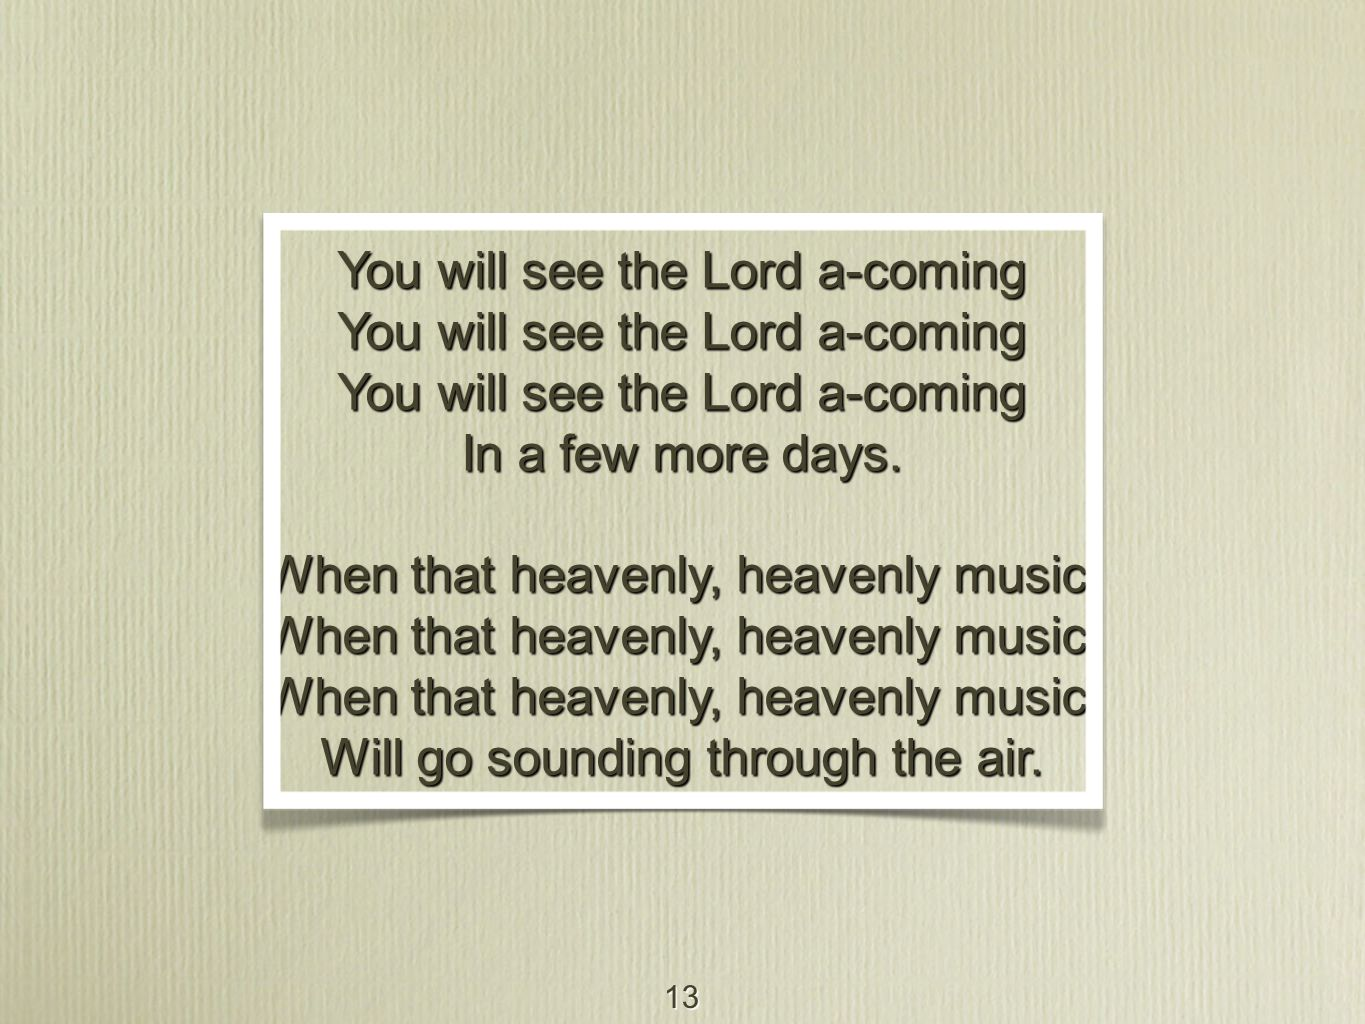 13 You will see the Lord a-coming In a few more days. When that heavenly, heavenly music, Will go sounding through the air.